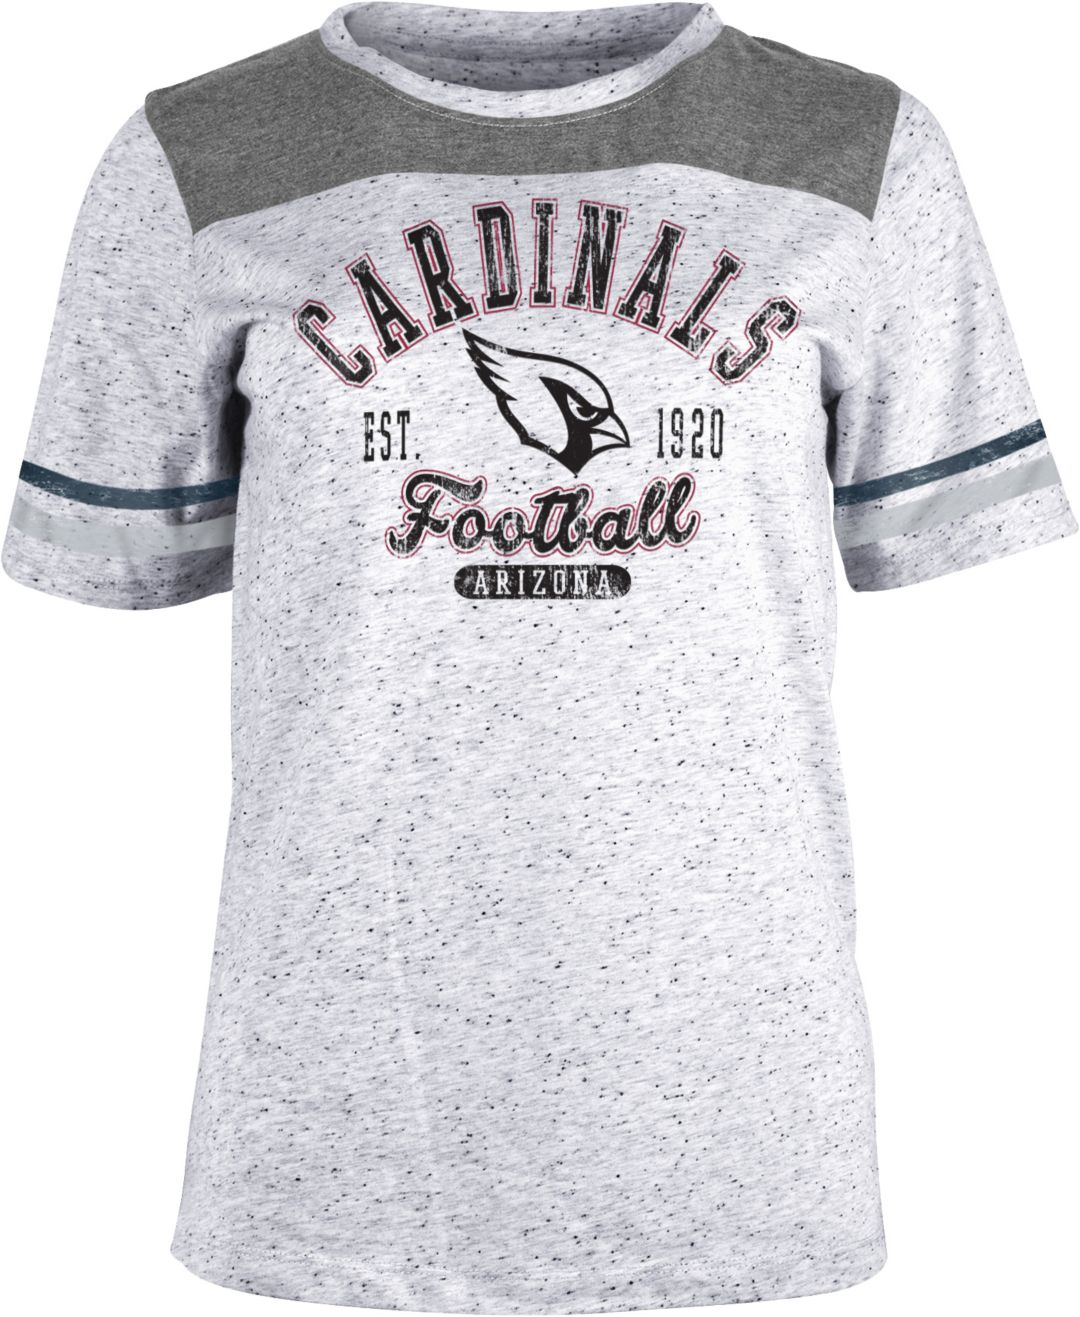 reputable site 1e68c 1bf85 NFL Team Apparel Women's Arizona Cardinals Peppercorn T-Shirt